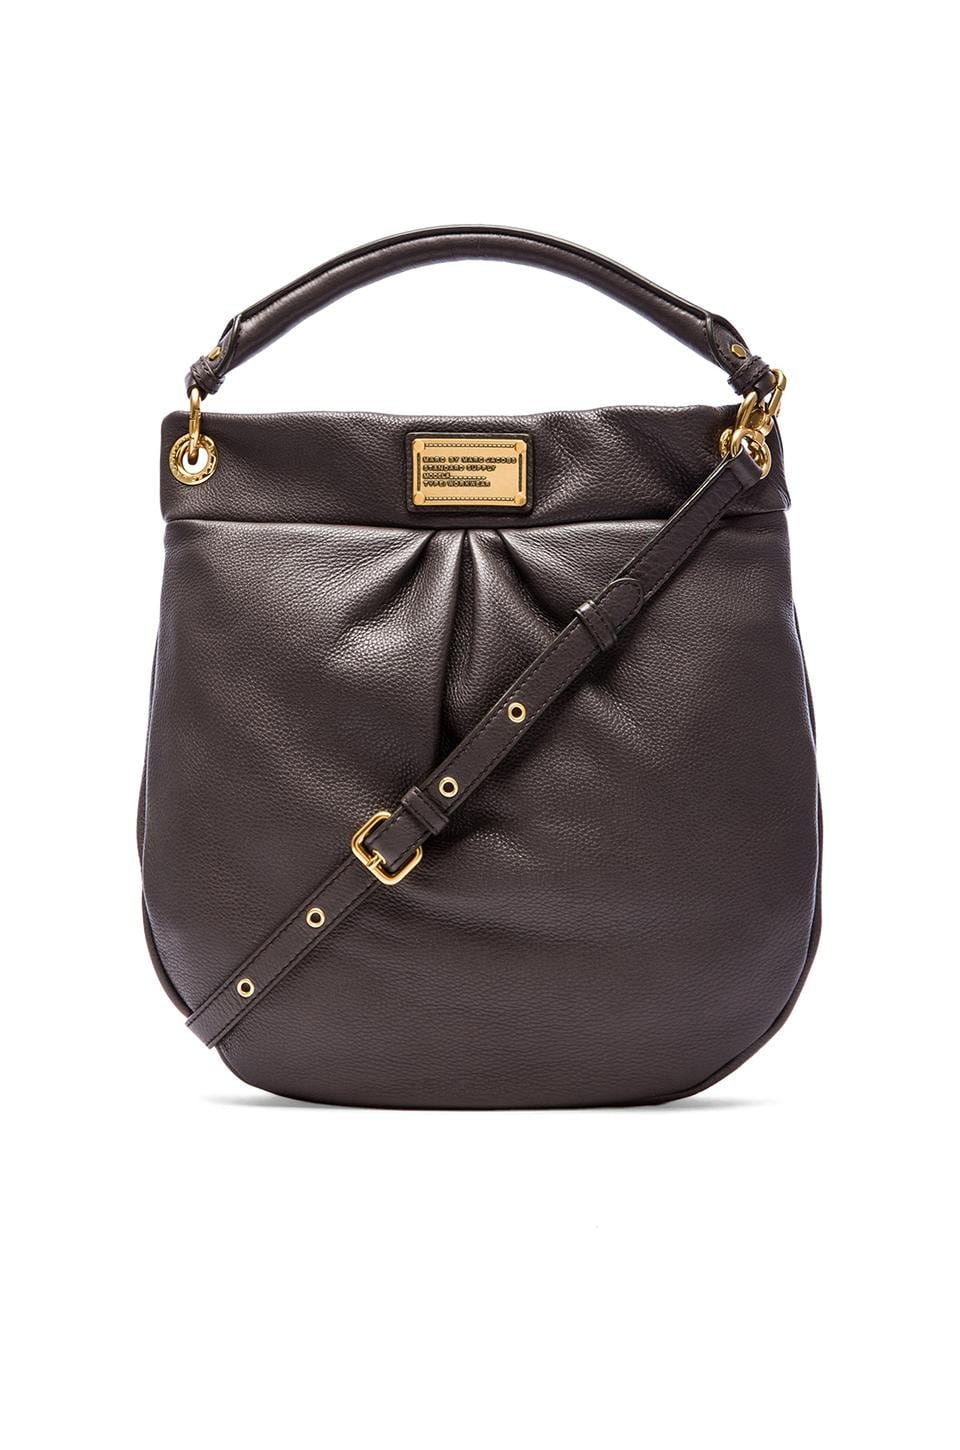 Marc by Marc Jacobs Classic Q Hillier Hobo in Faded Aluminum